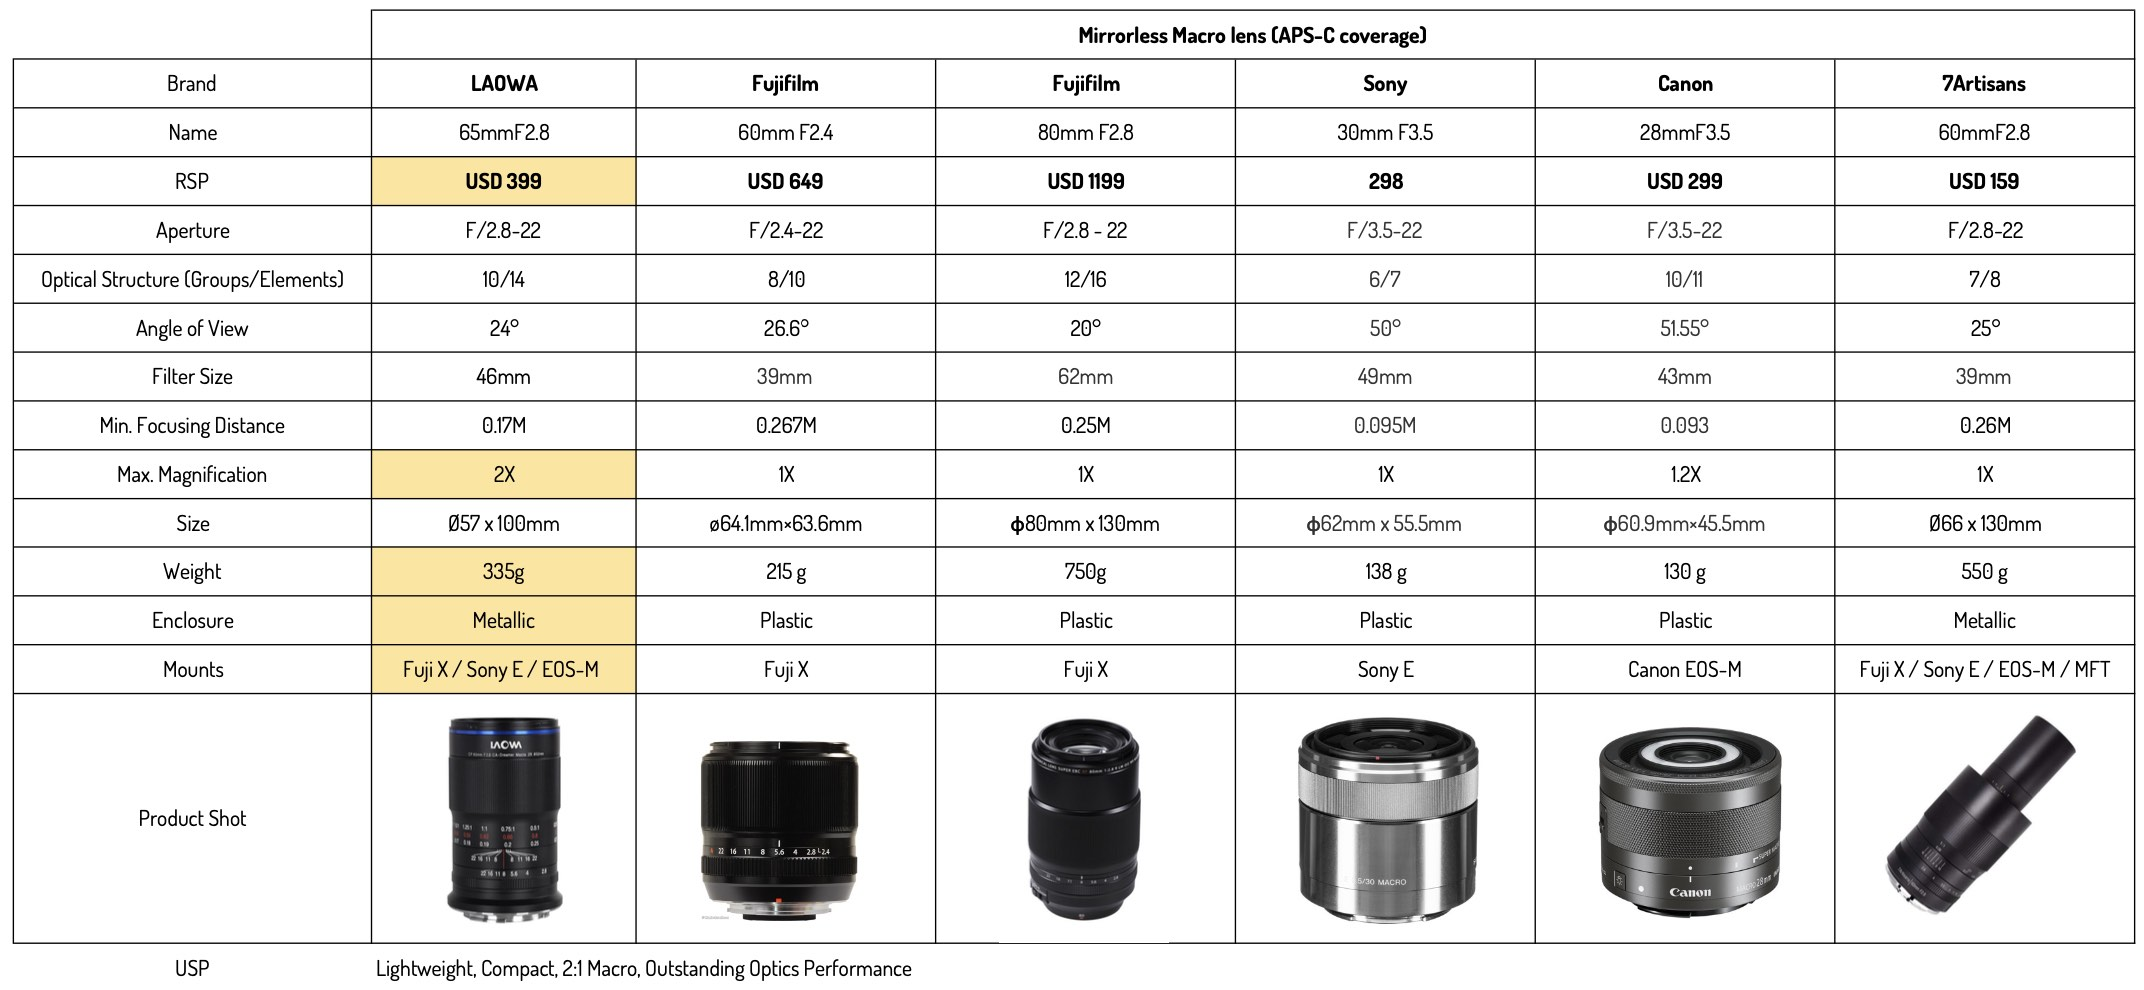 Venus Optics announces the availability and pricing of